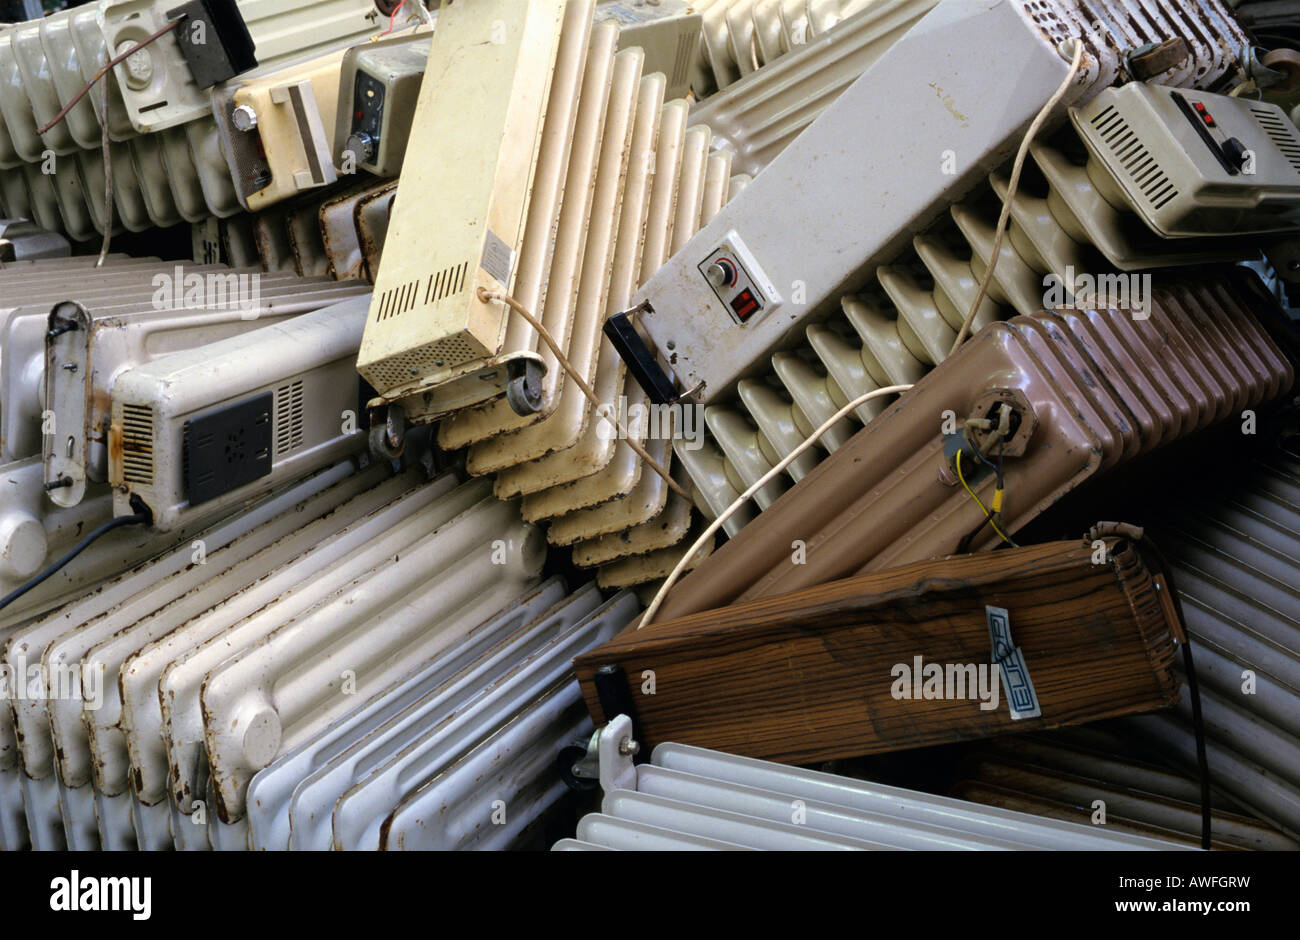 Pile of discarded heaters, Germany, Europe - Stock Image